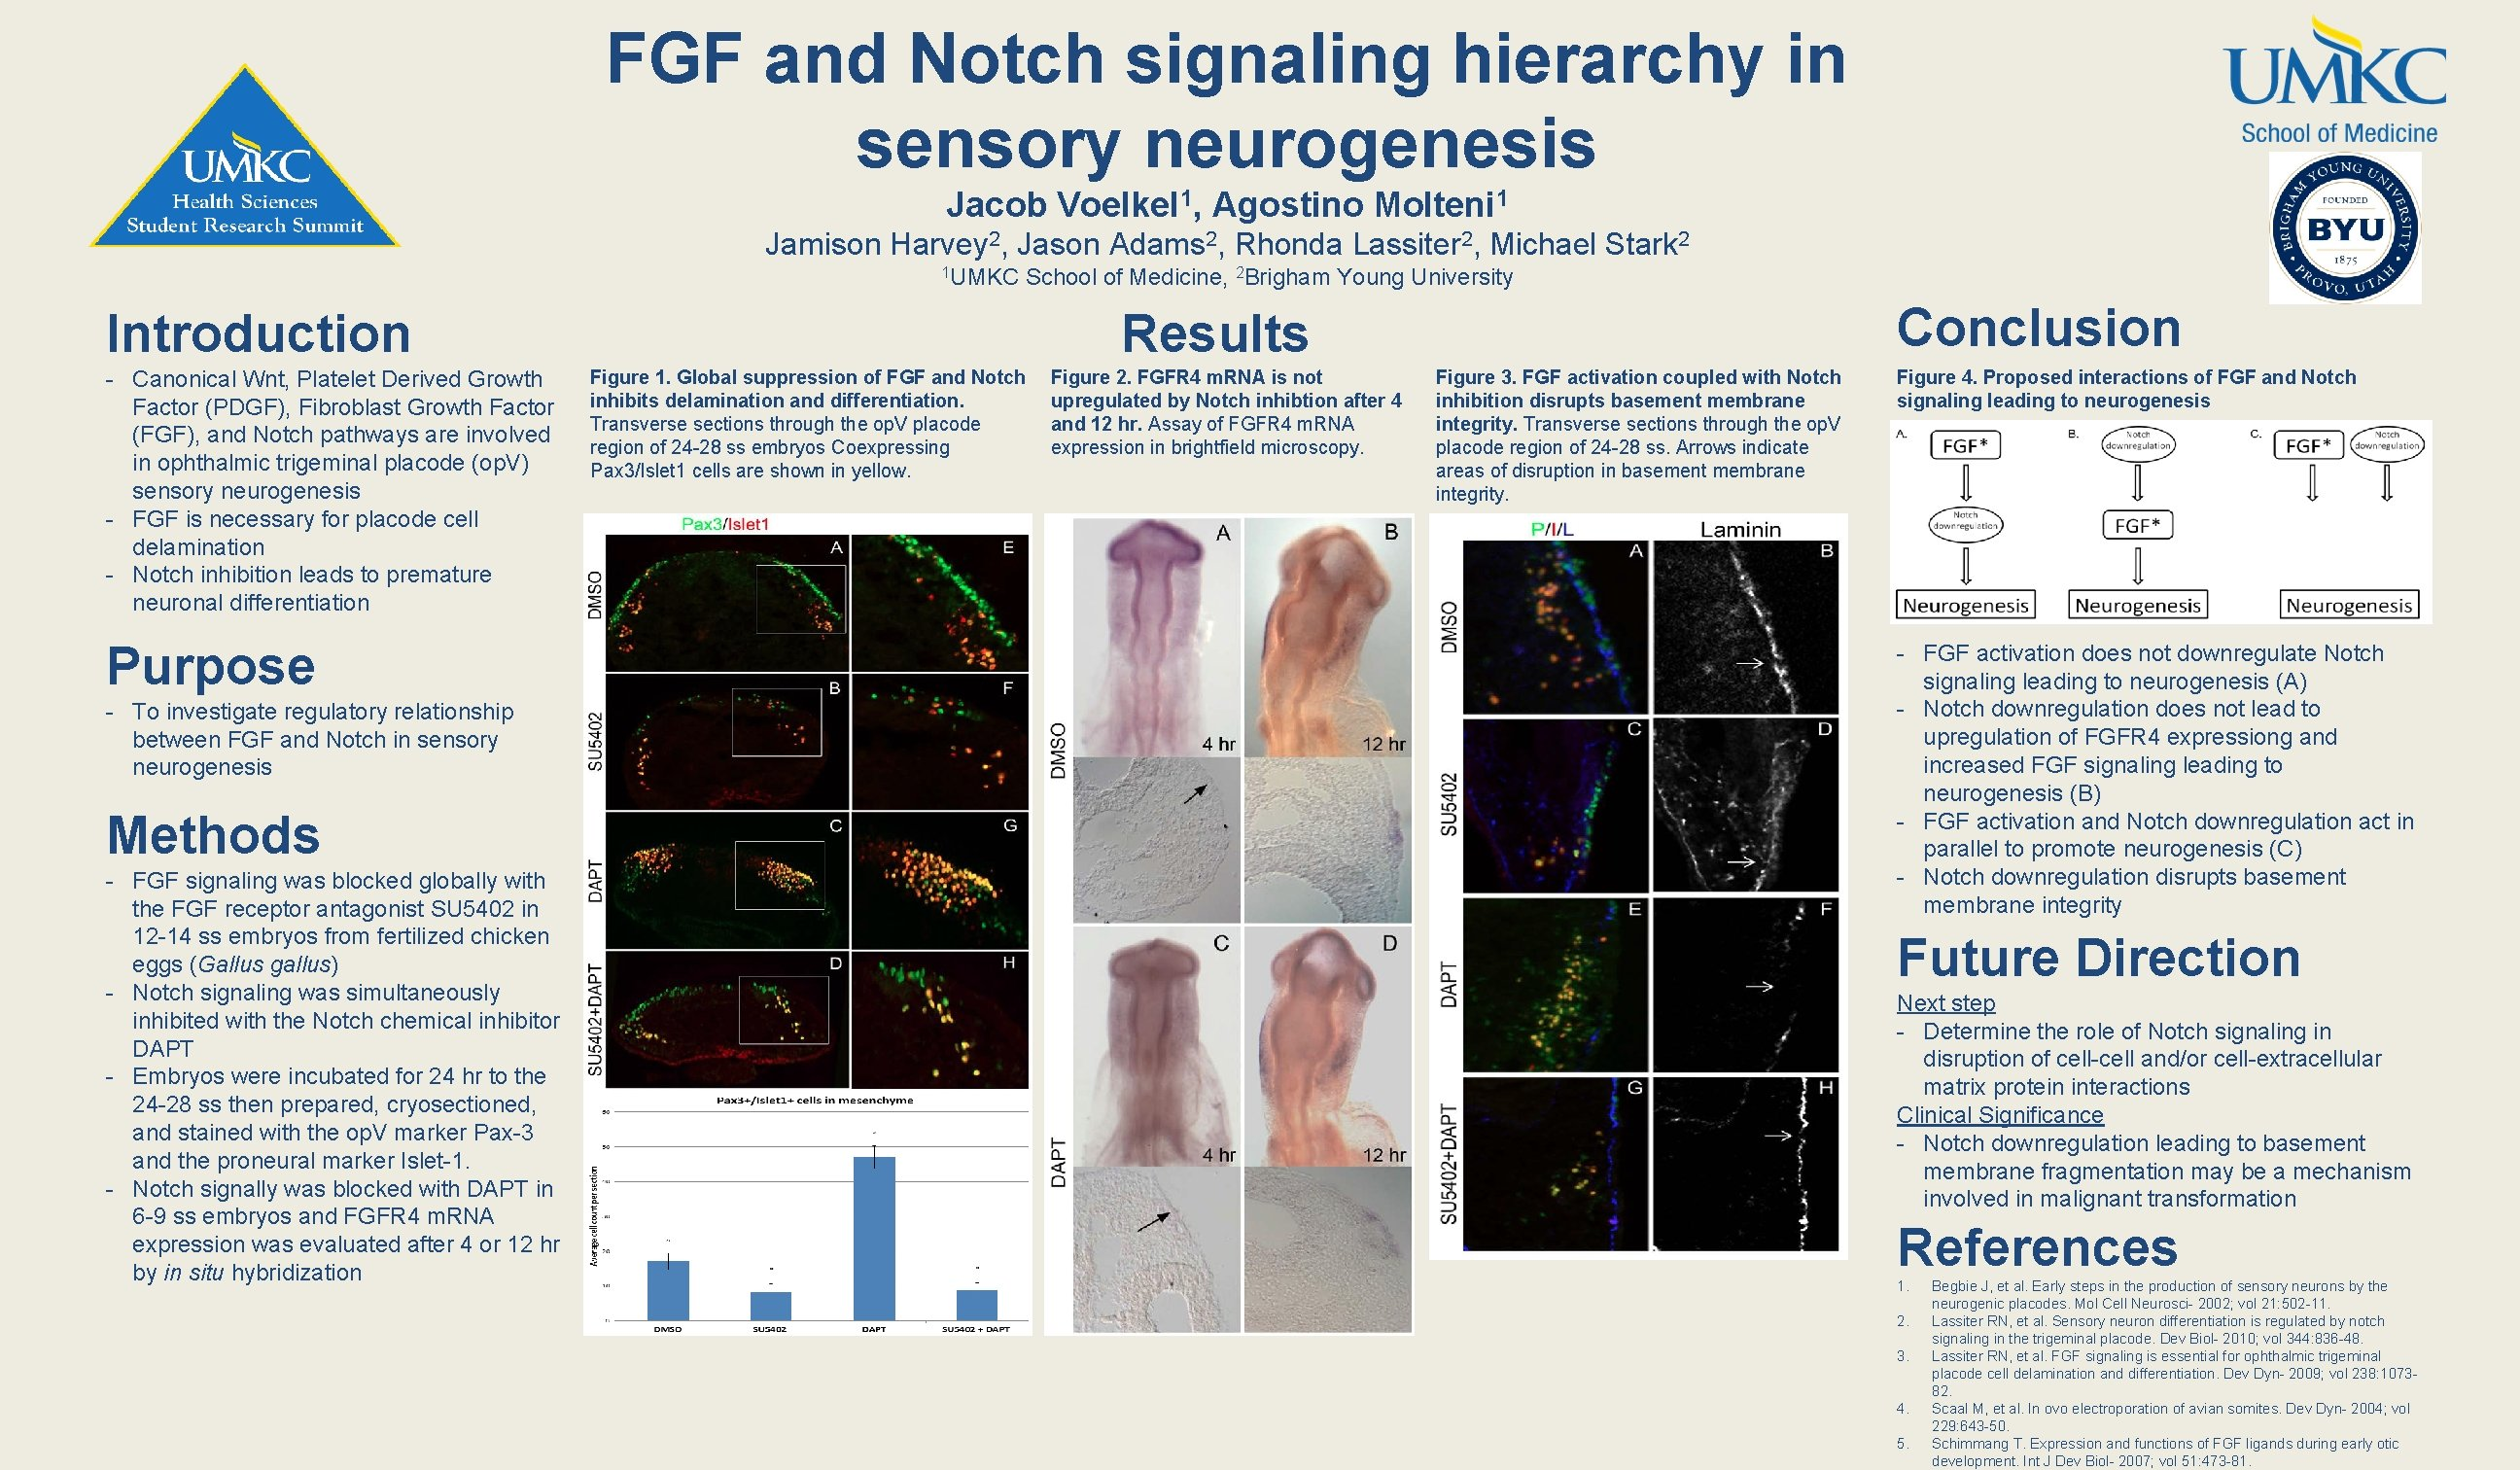 FGF and Notch signaling hierarchy in sensory neurogenesis Jacob Voelkel 1, Agostino Molteni 1